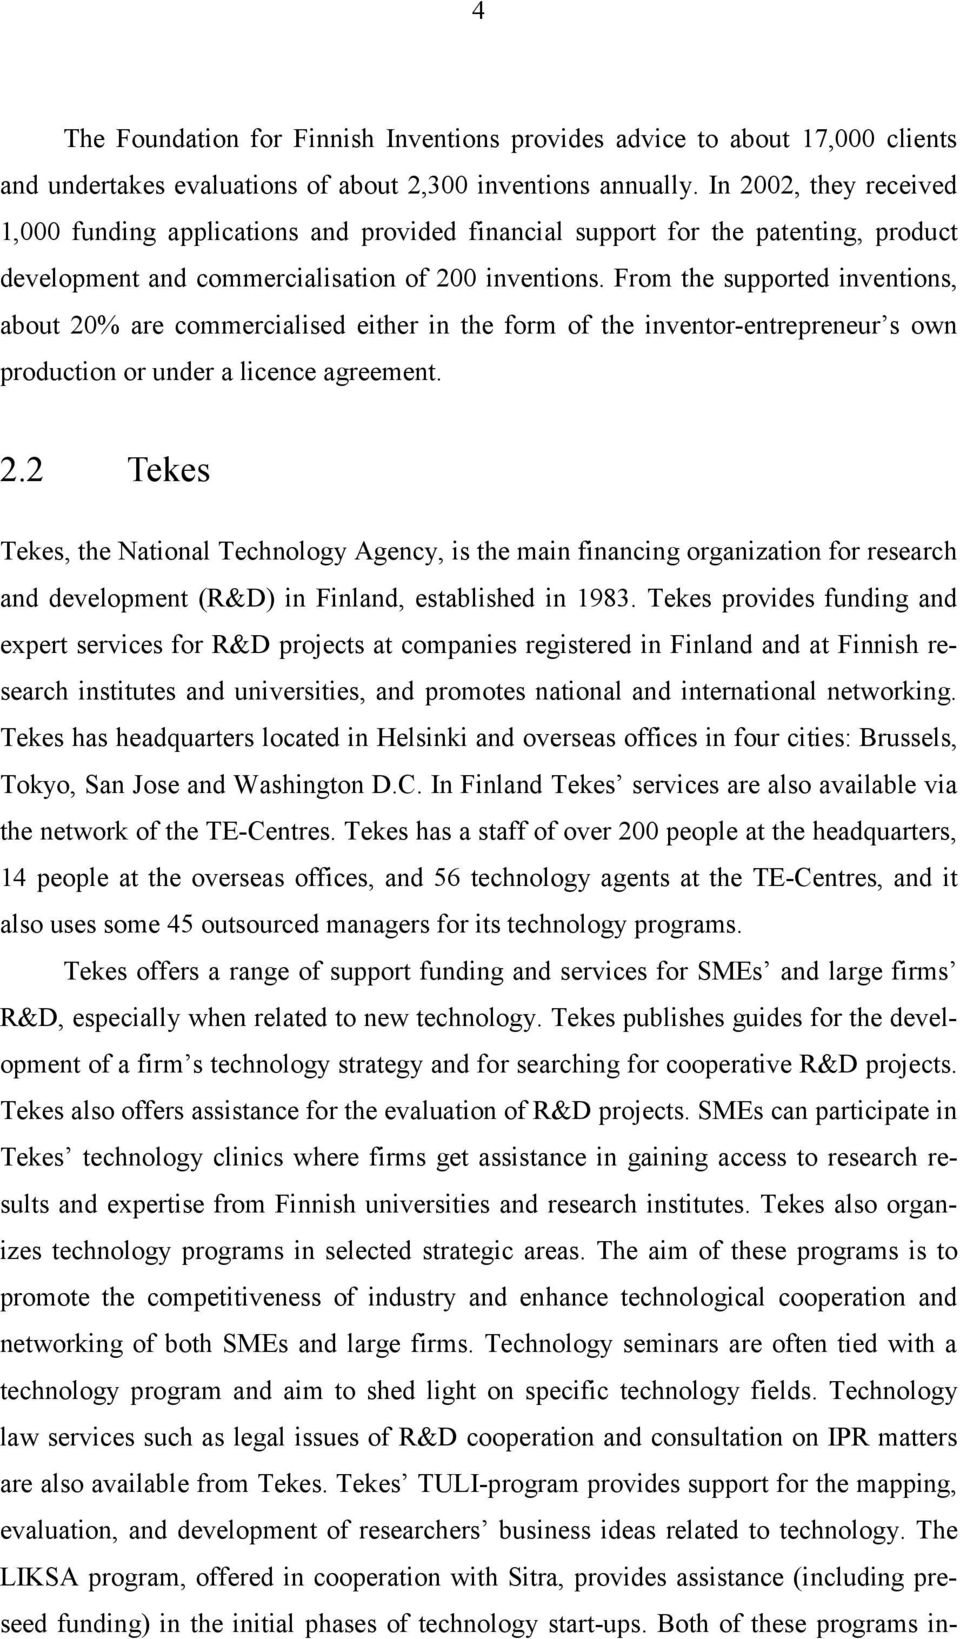 From the supported inventions, about 20% are commercialised either in the form of the inventor-entrepreneur s own production or under a licence agreement. 2.2 Tekes Tekes, the National Technology Agency, is the main financing organization for research and development (R&D) in Finland, established in 1983.